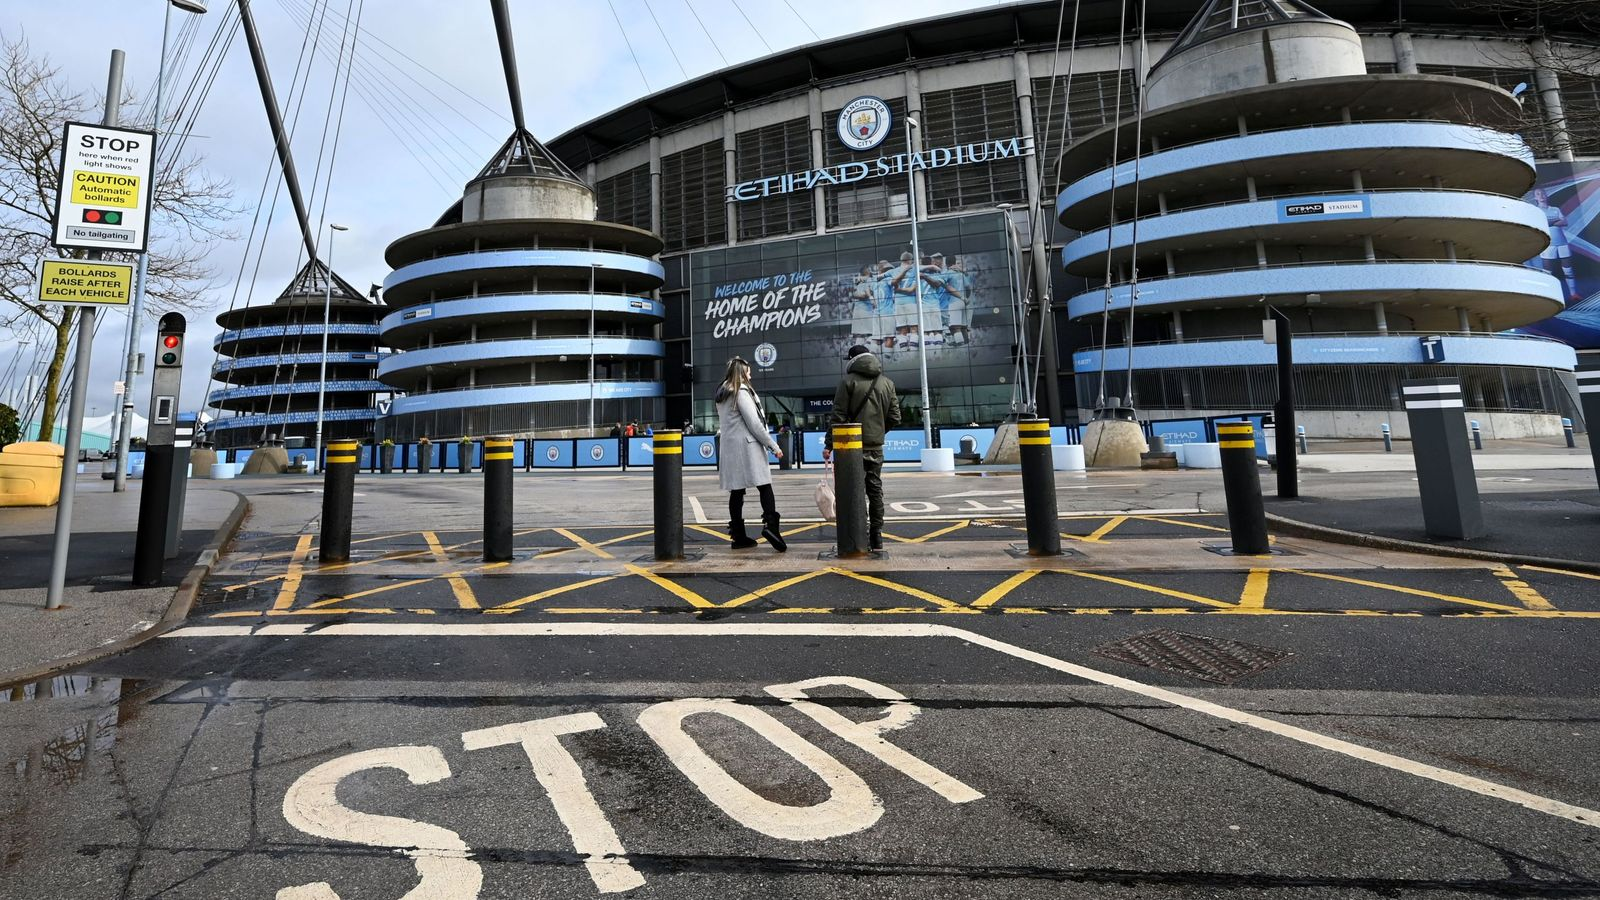 Manchester City European ban appeal decision to be announced at 9.30am Monday